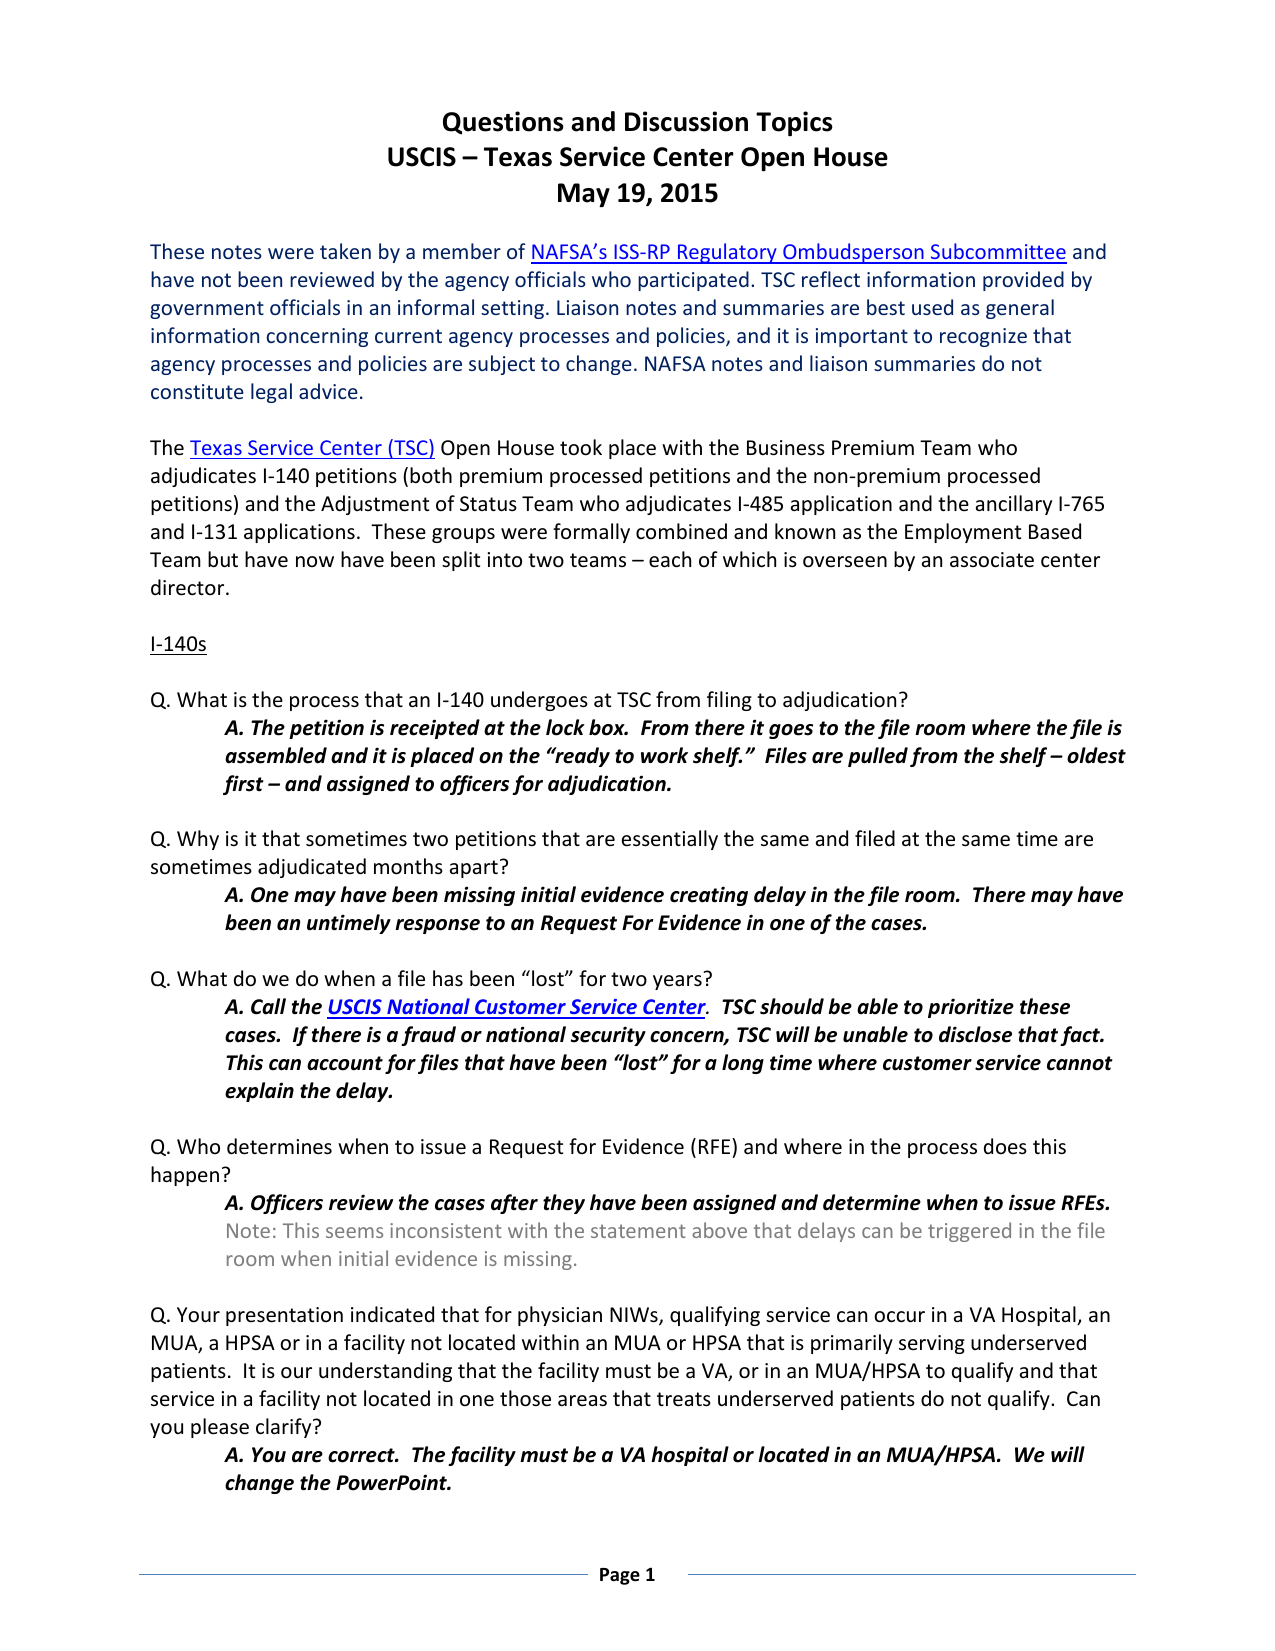 Questions and Discussion Topics USCIS – Texas Service Center